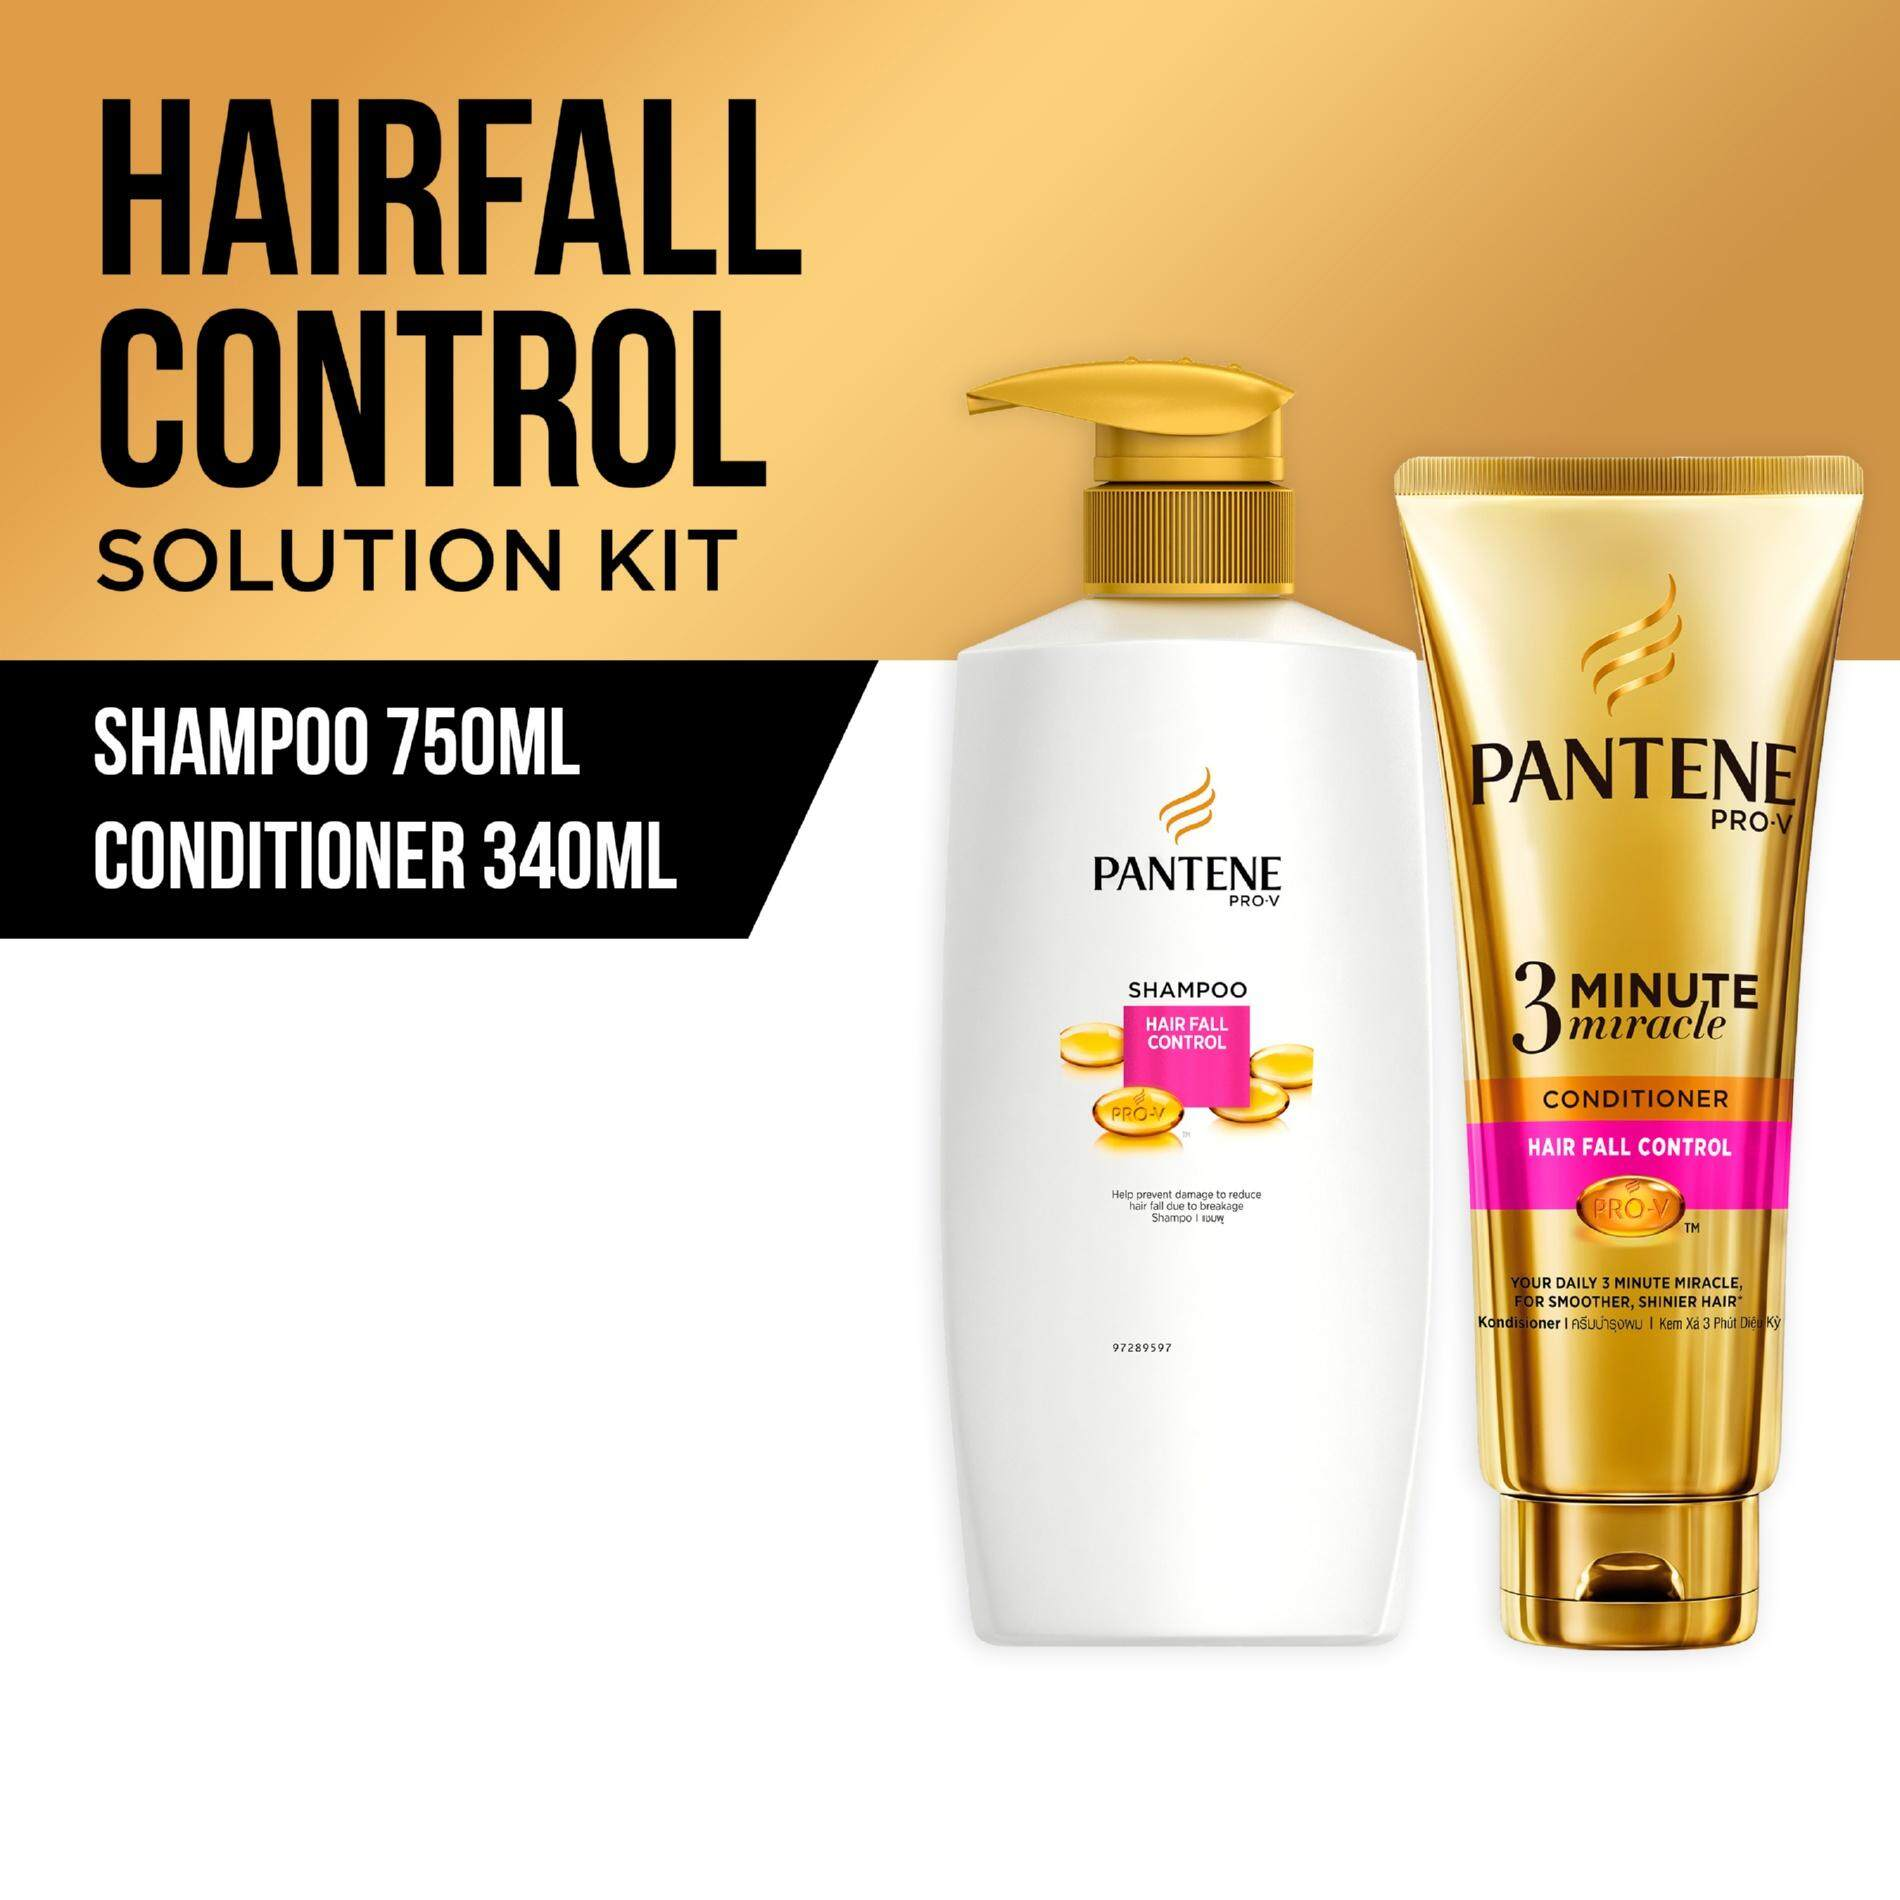 Pantene Pro-V Hair Fall Control Solution Shampoo and Conditioner Kit